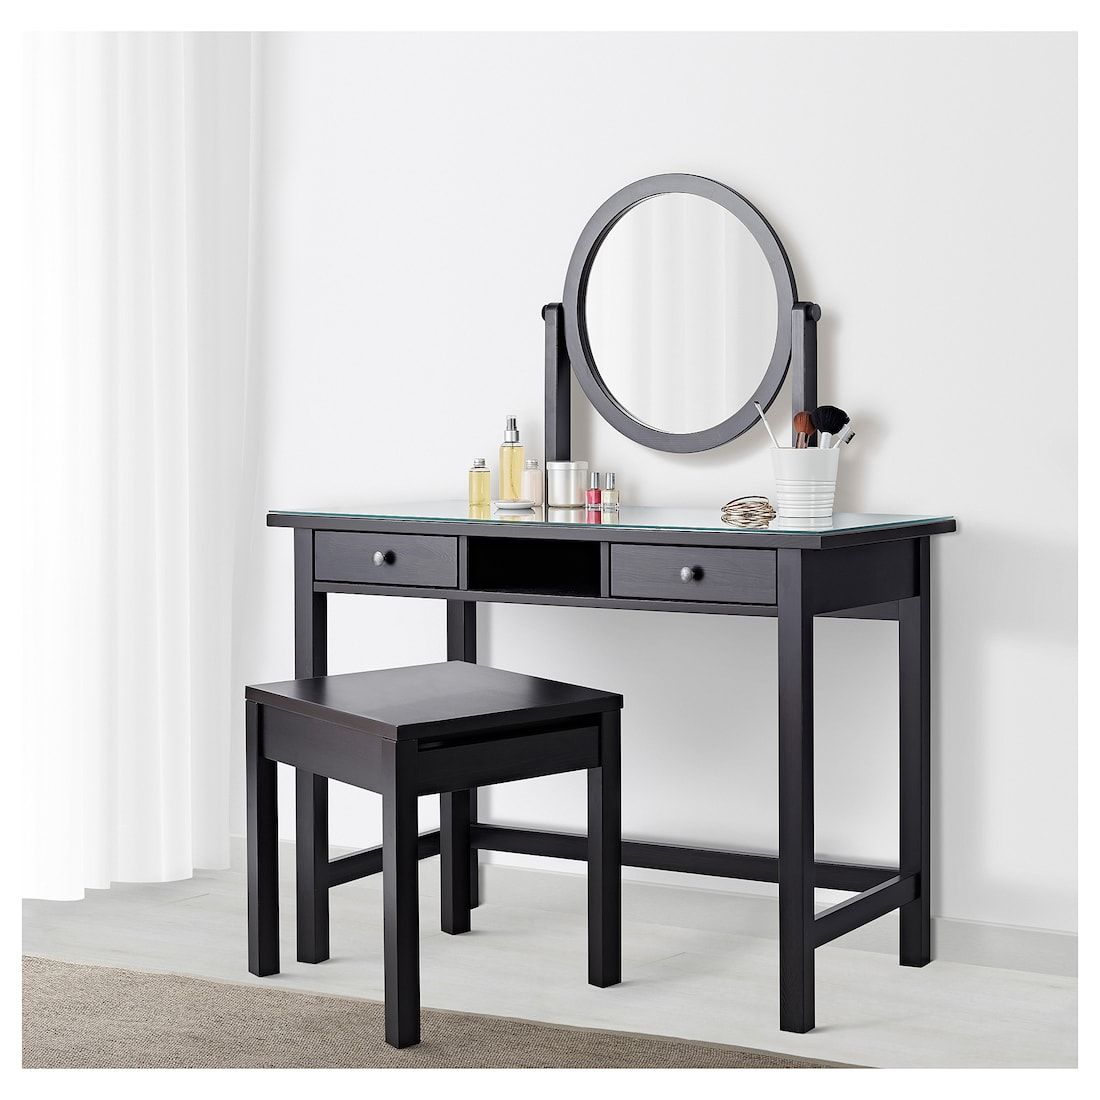 Hemnes Dressing Table With Mirror Black Brown 43 1 4x17 3 4 Ikea Dressing Table Mirror Black Dressing Tables Black Wall Mirror